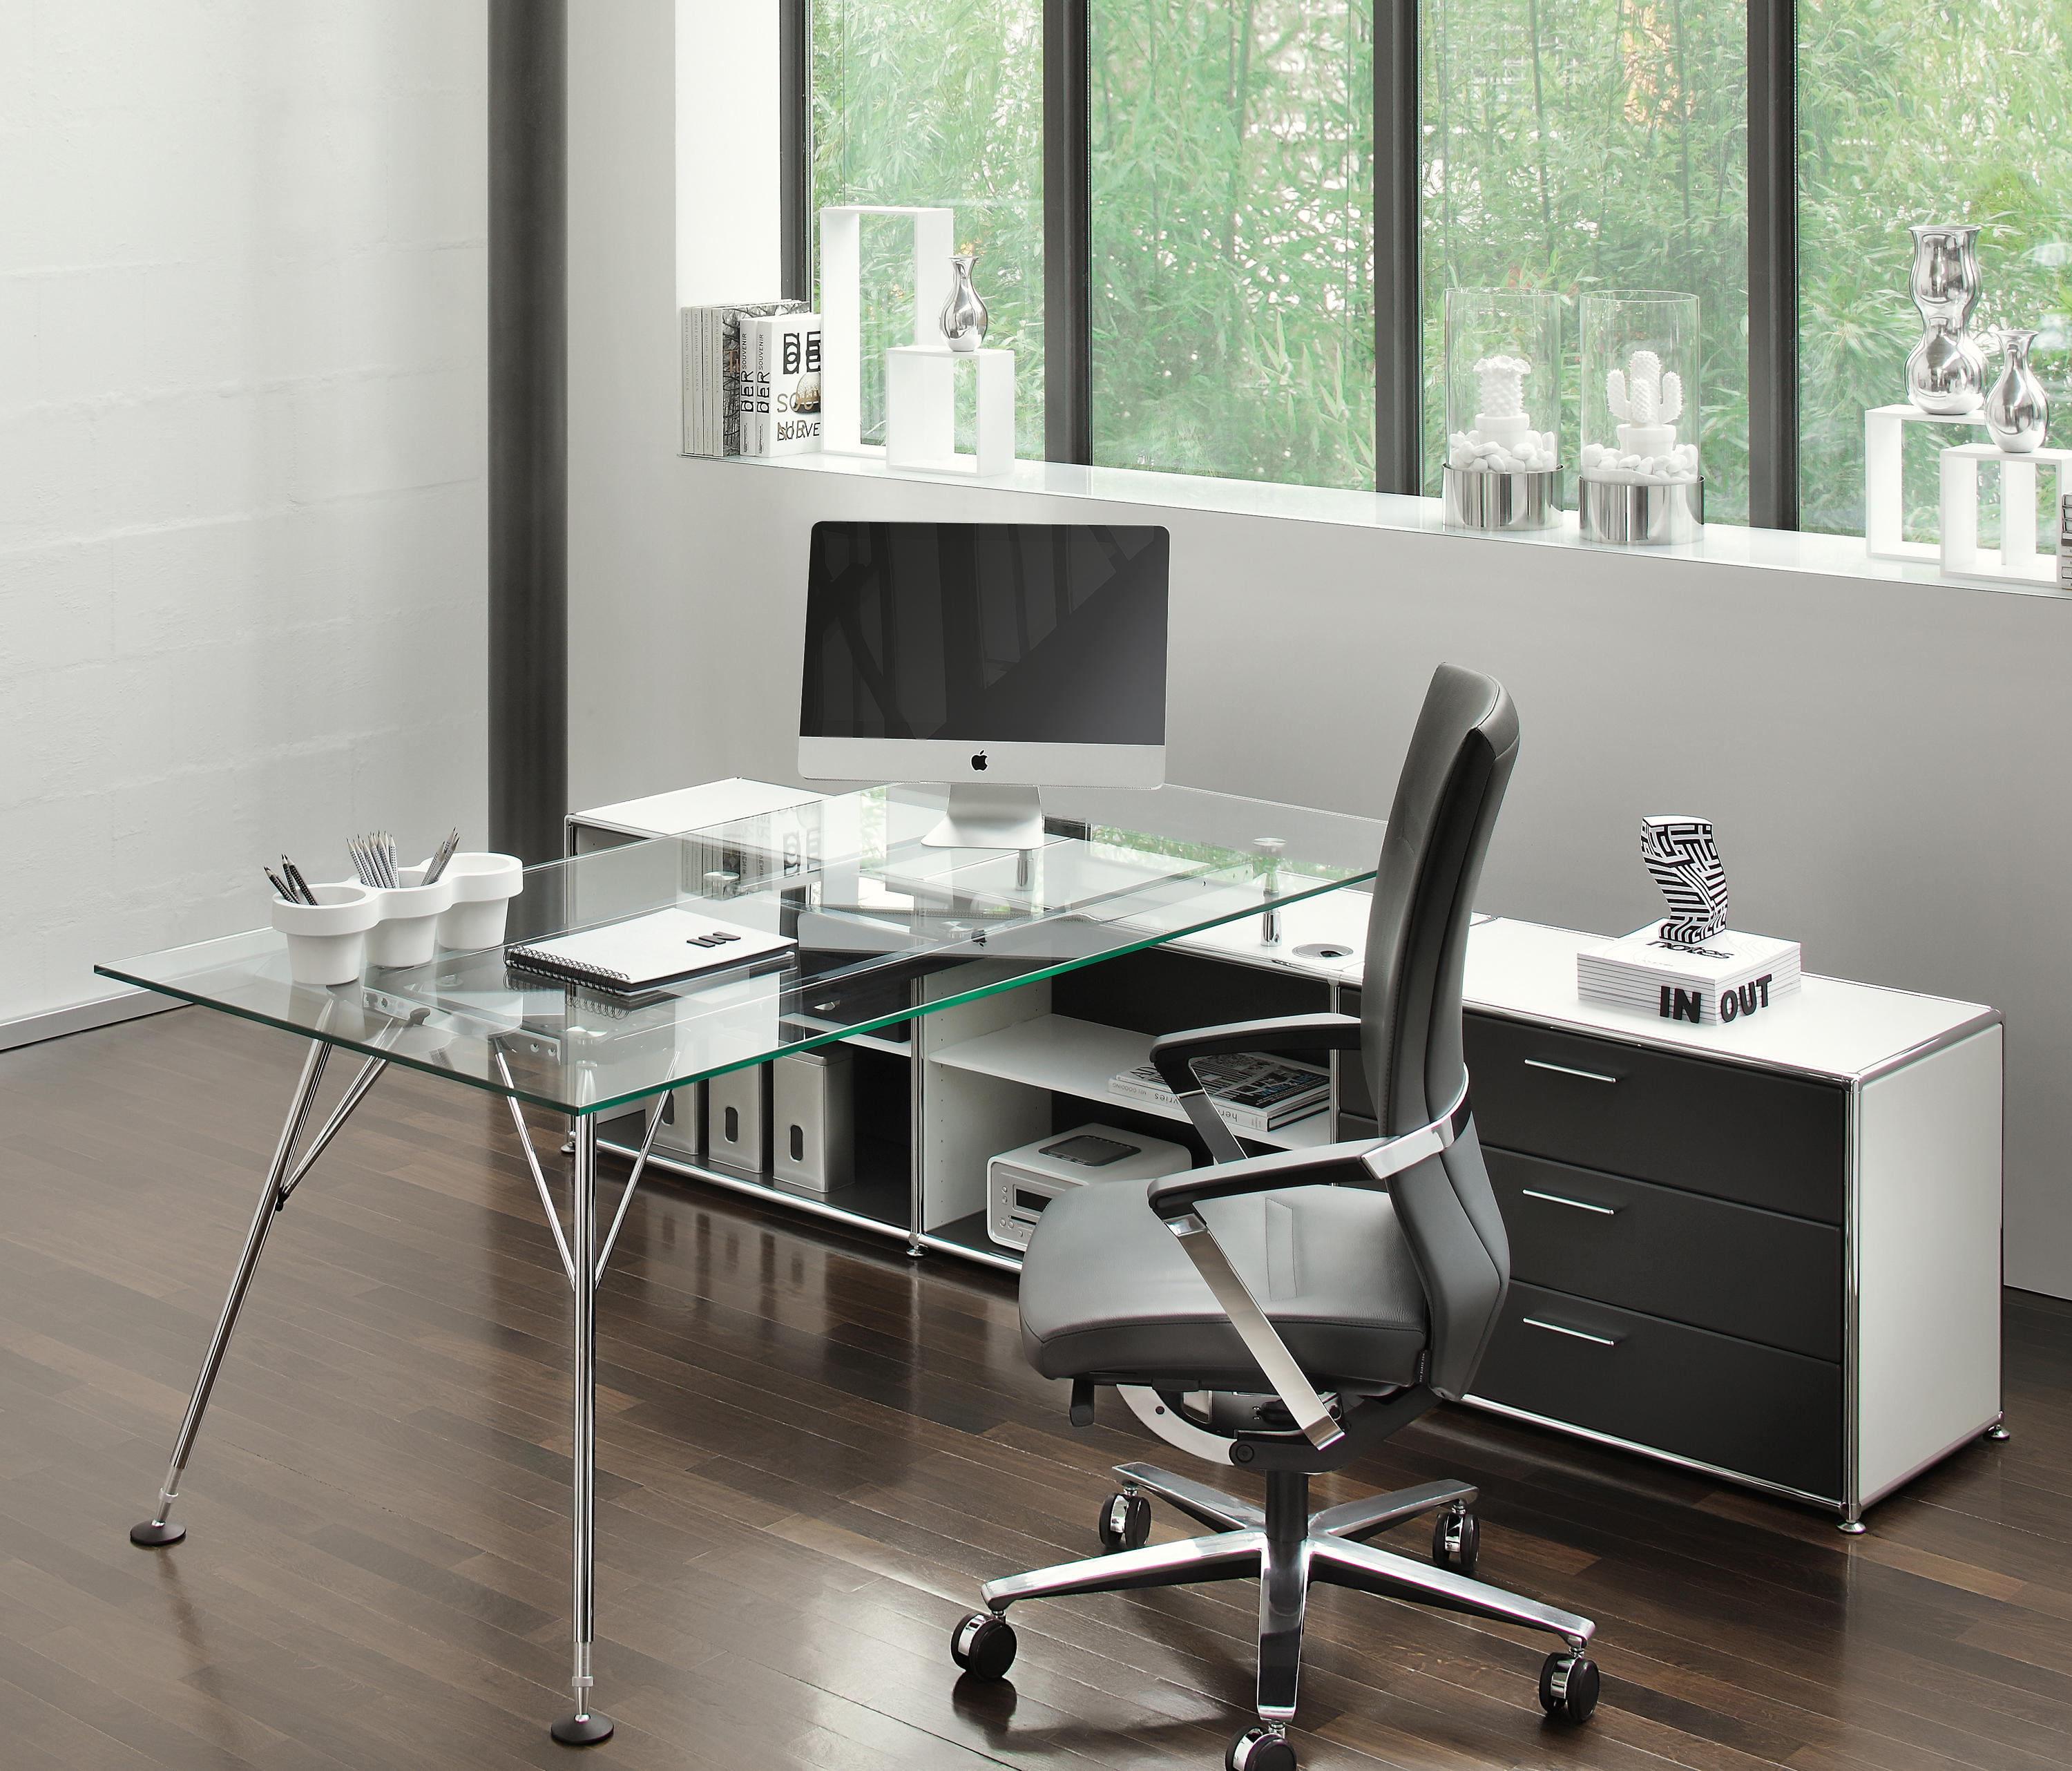 Dauphin Home workstation desks from dauphin home architonic